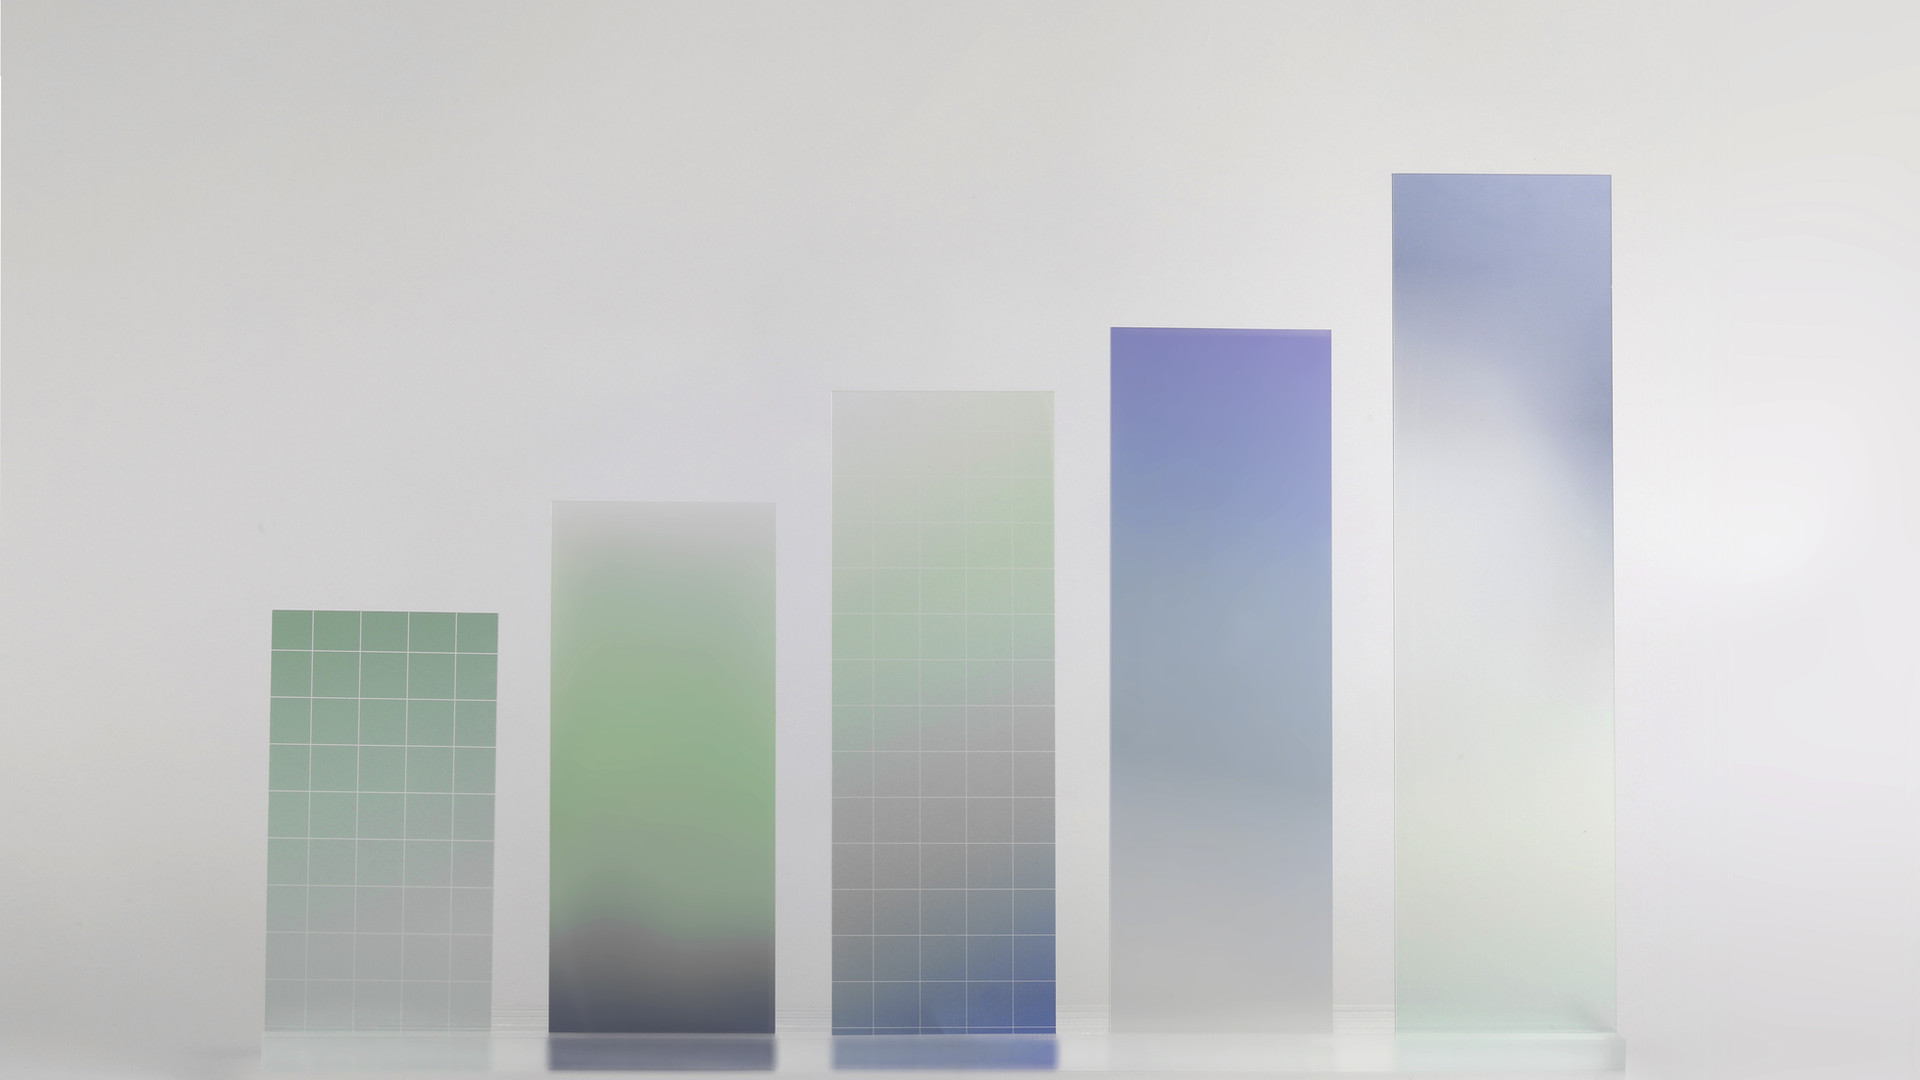 Bar Chart with five